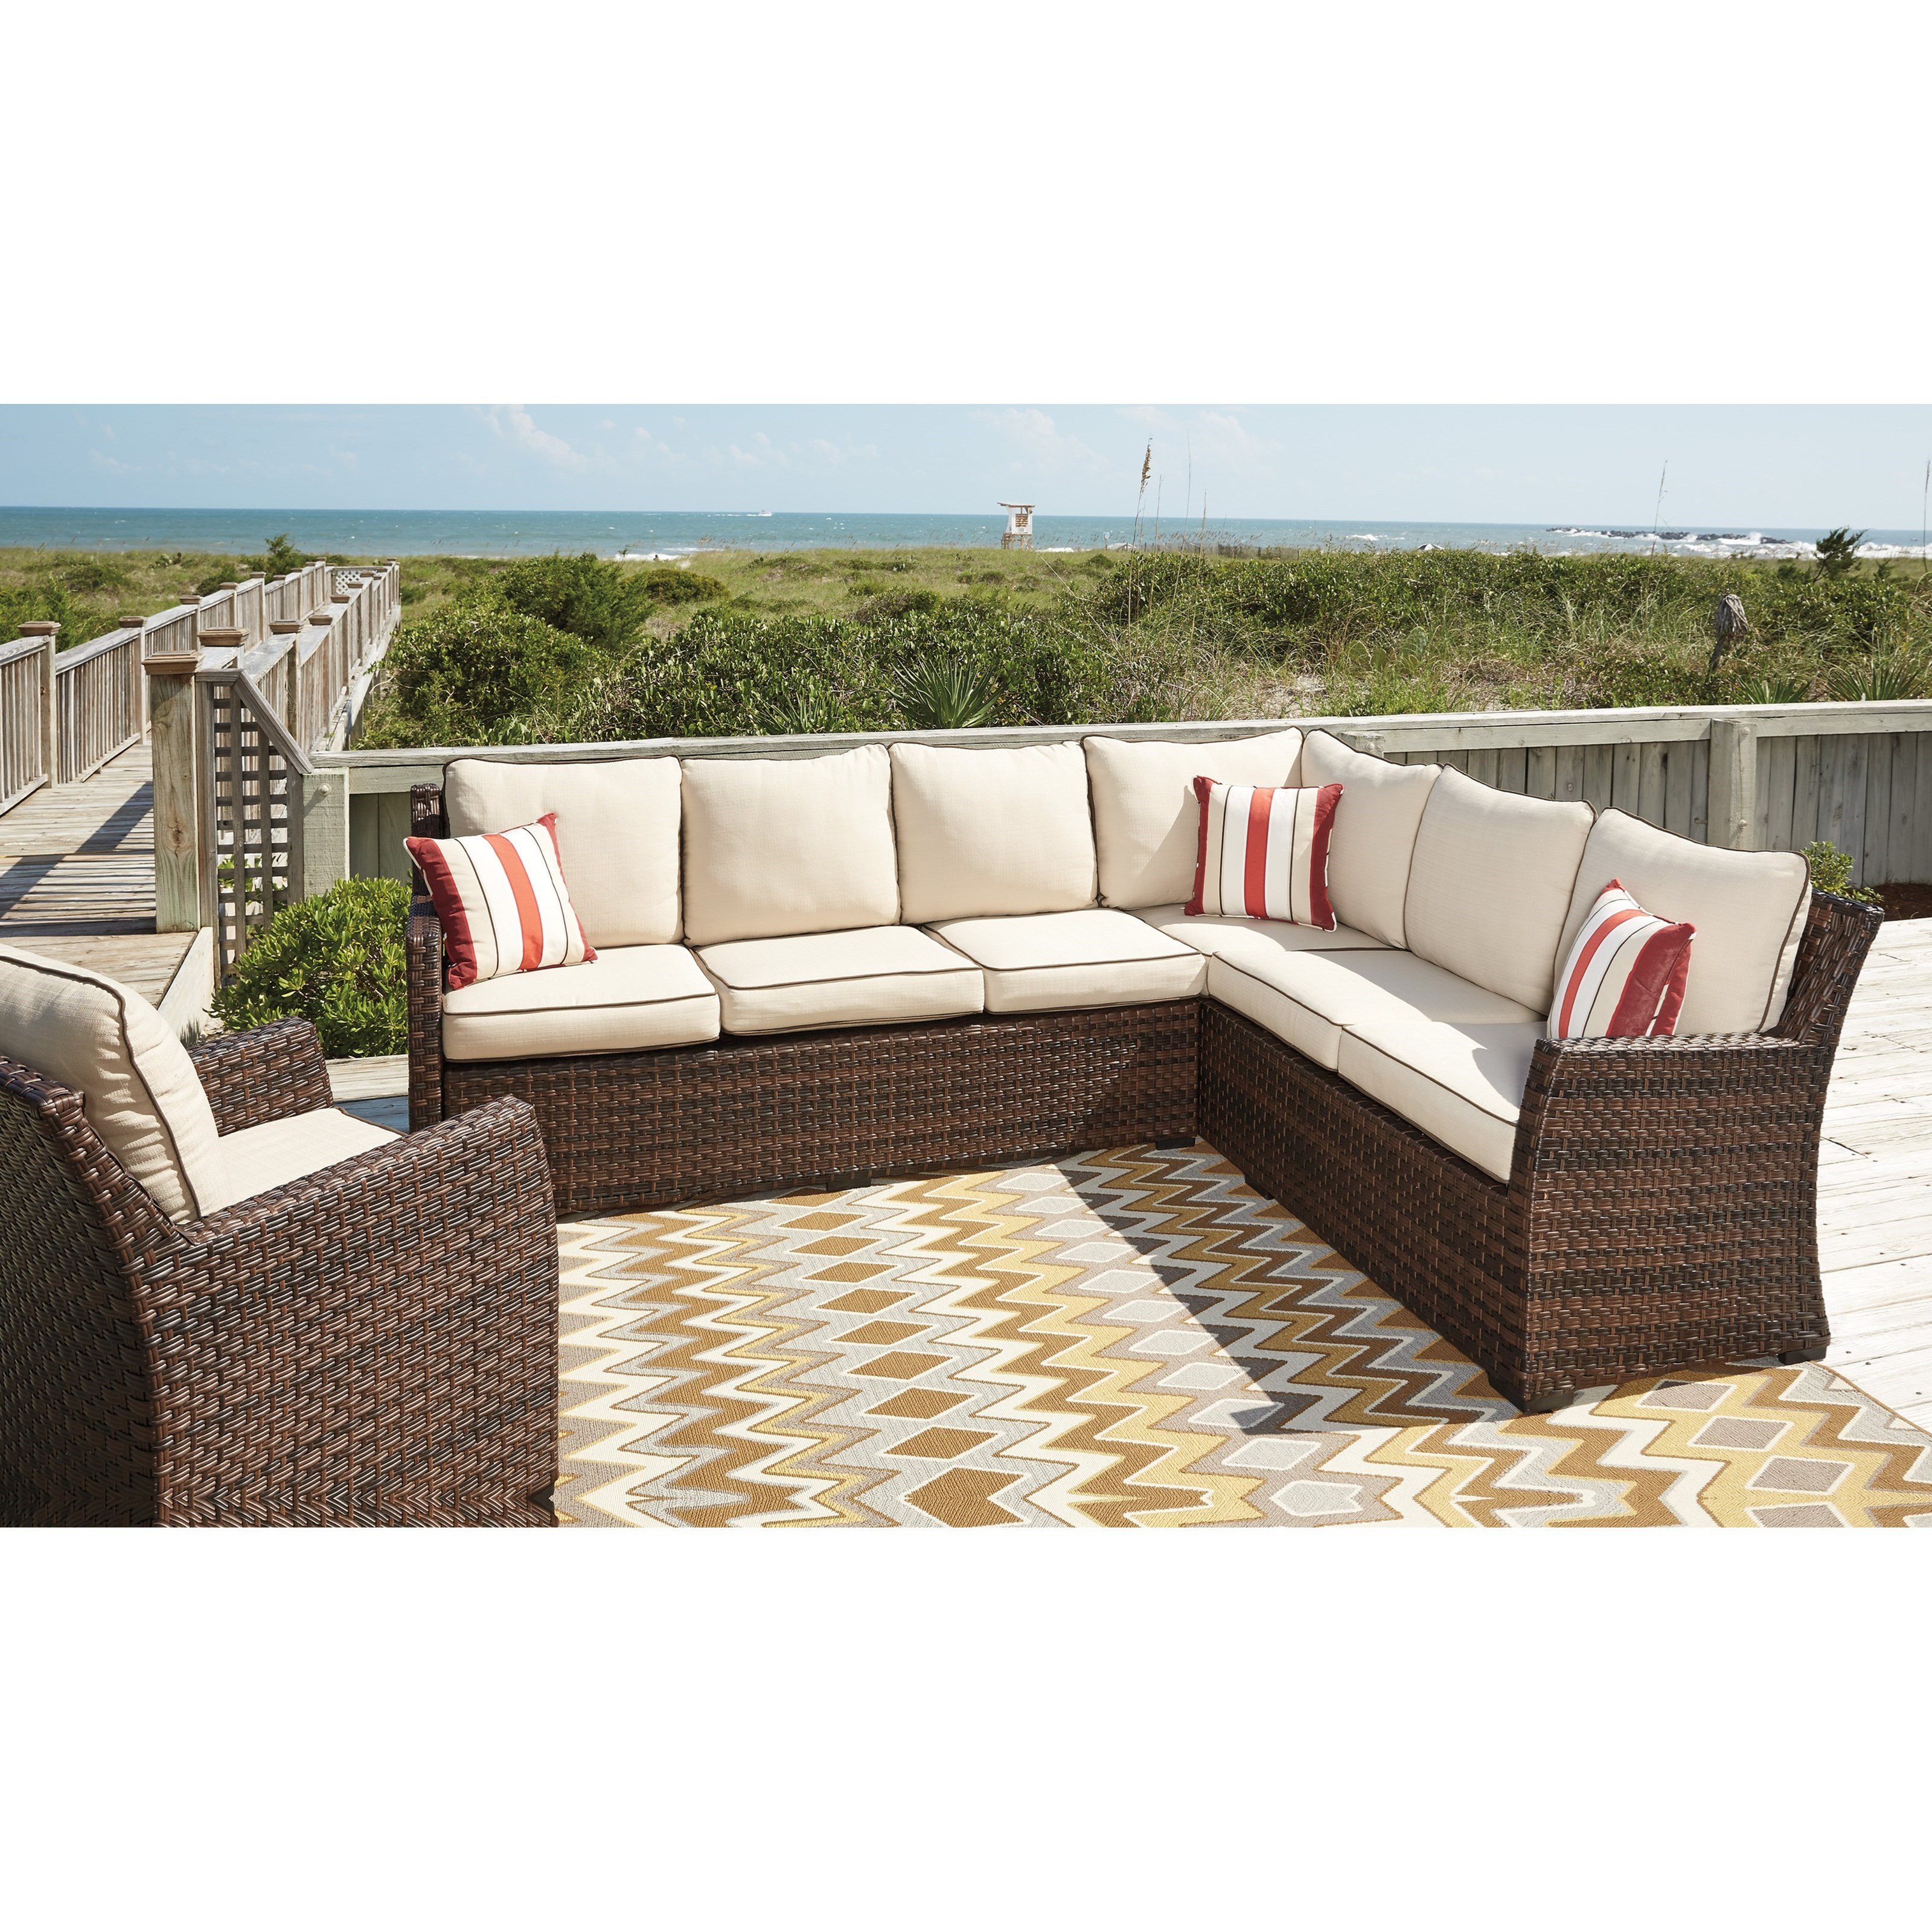 Awesome laurel 4 piece fabric sectional sofa sectional sofas for Laurel 4 piece sectional sofa